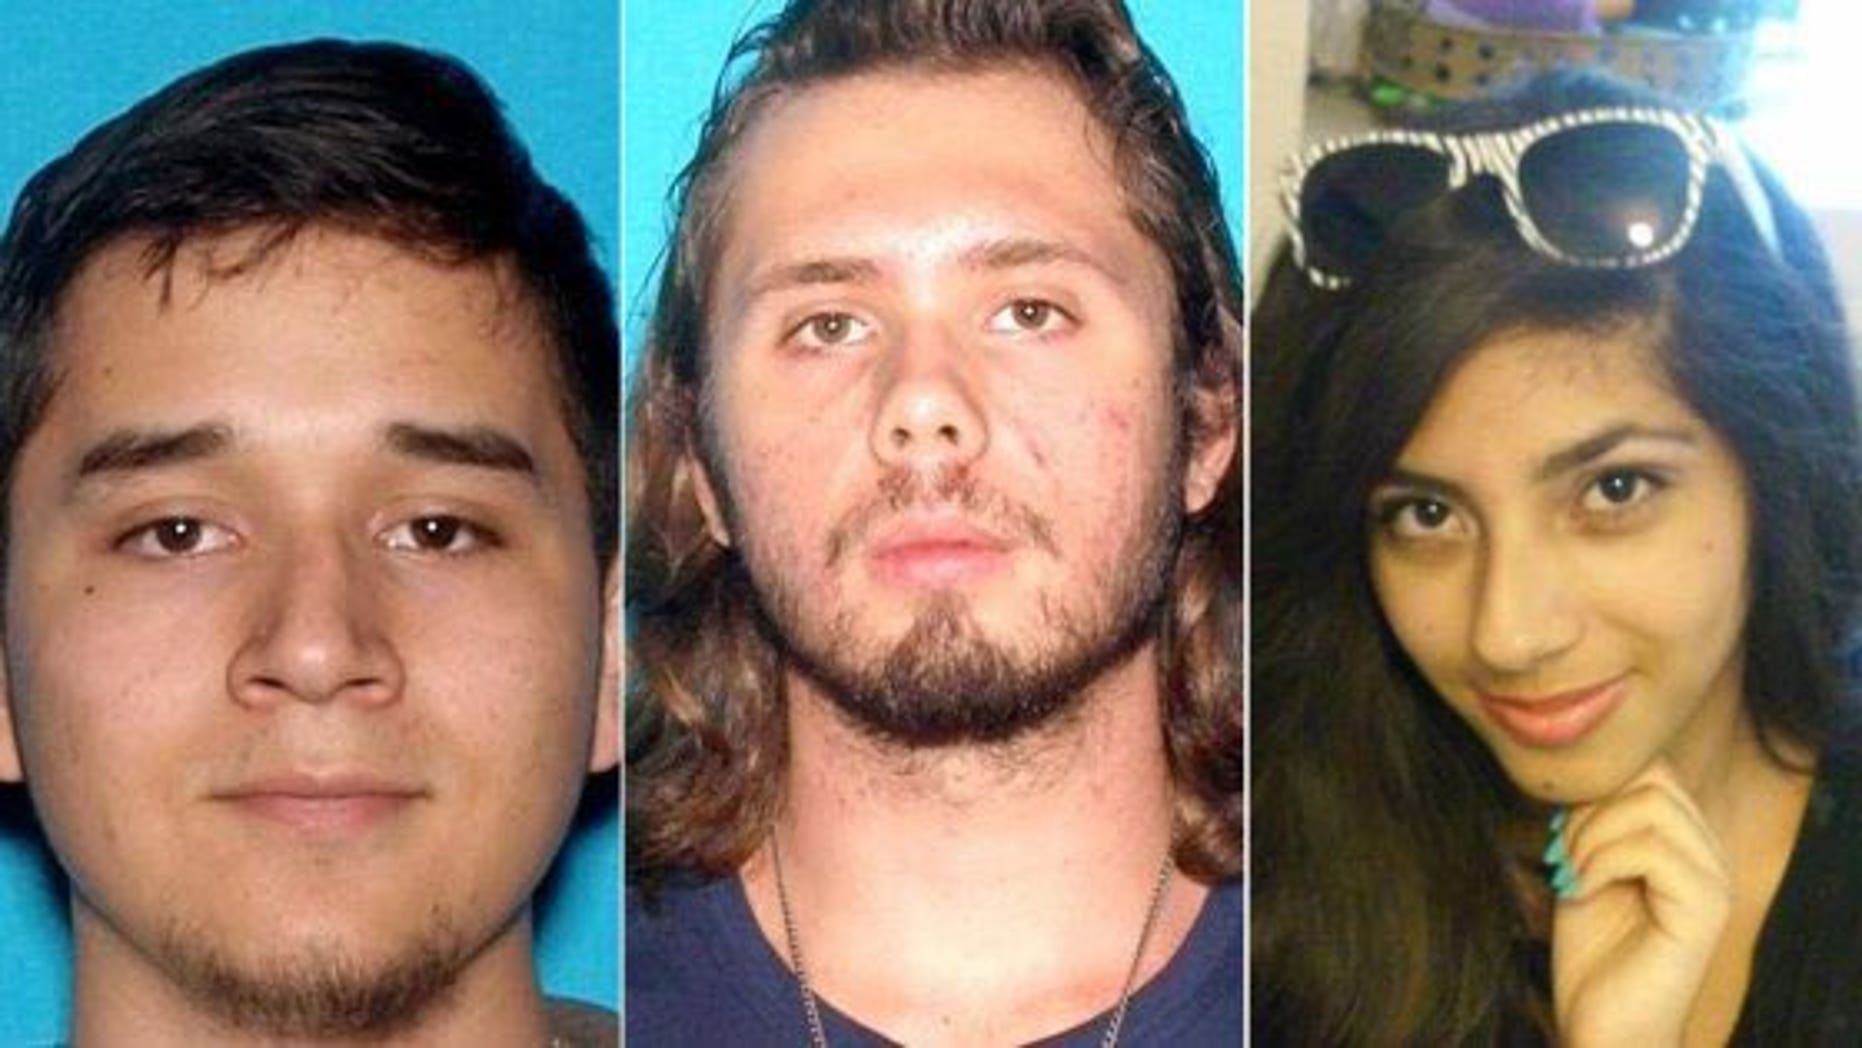 Investigators have not confirmed whether the bodies found are (from left) Daniel Gamboa, Kasey Vance and Samantha Ornelas, who disappeared Saturday.